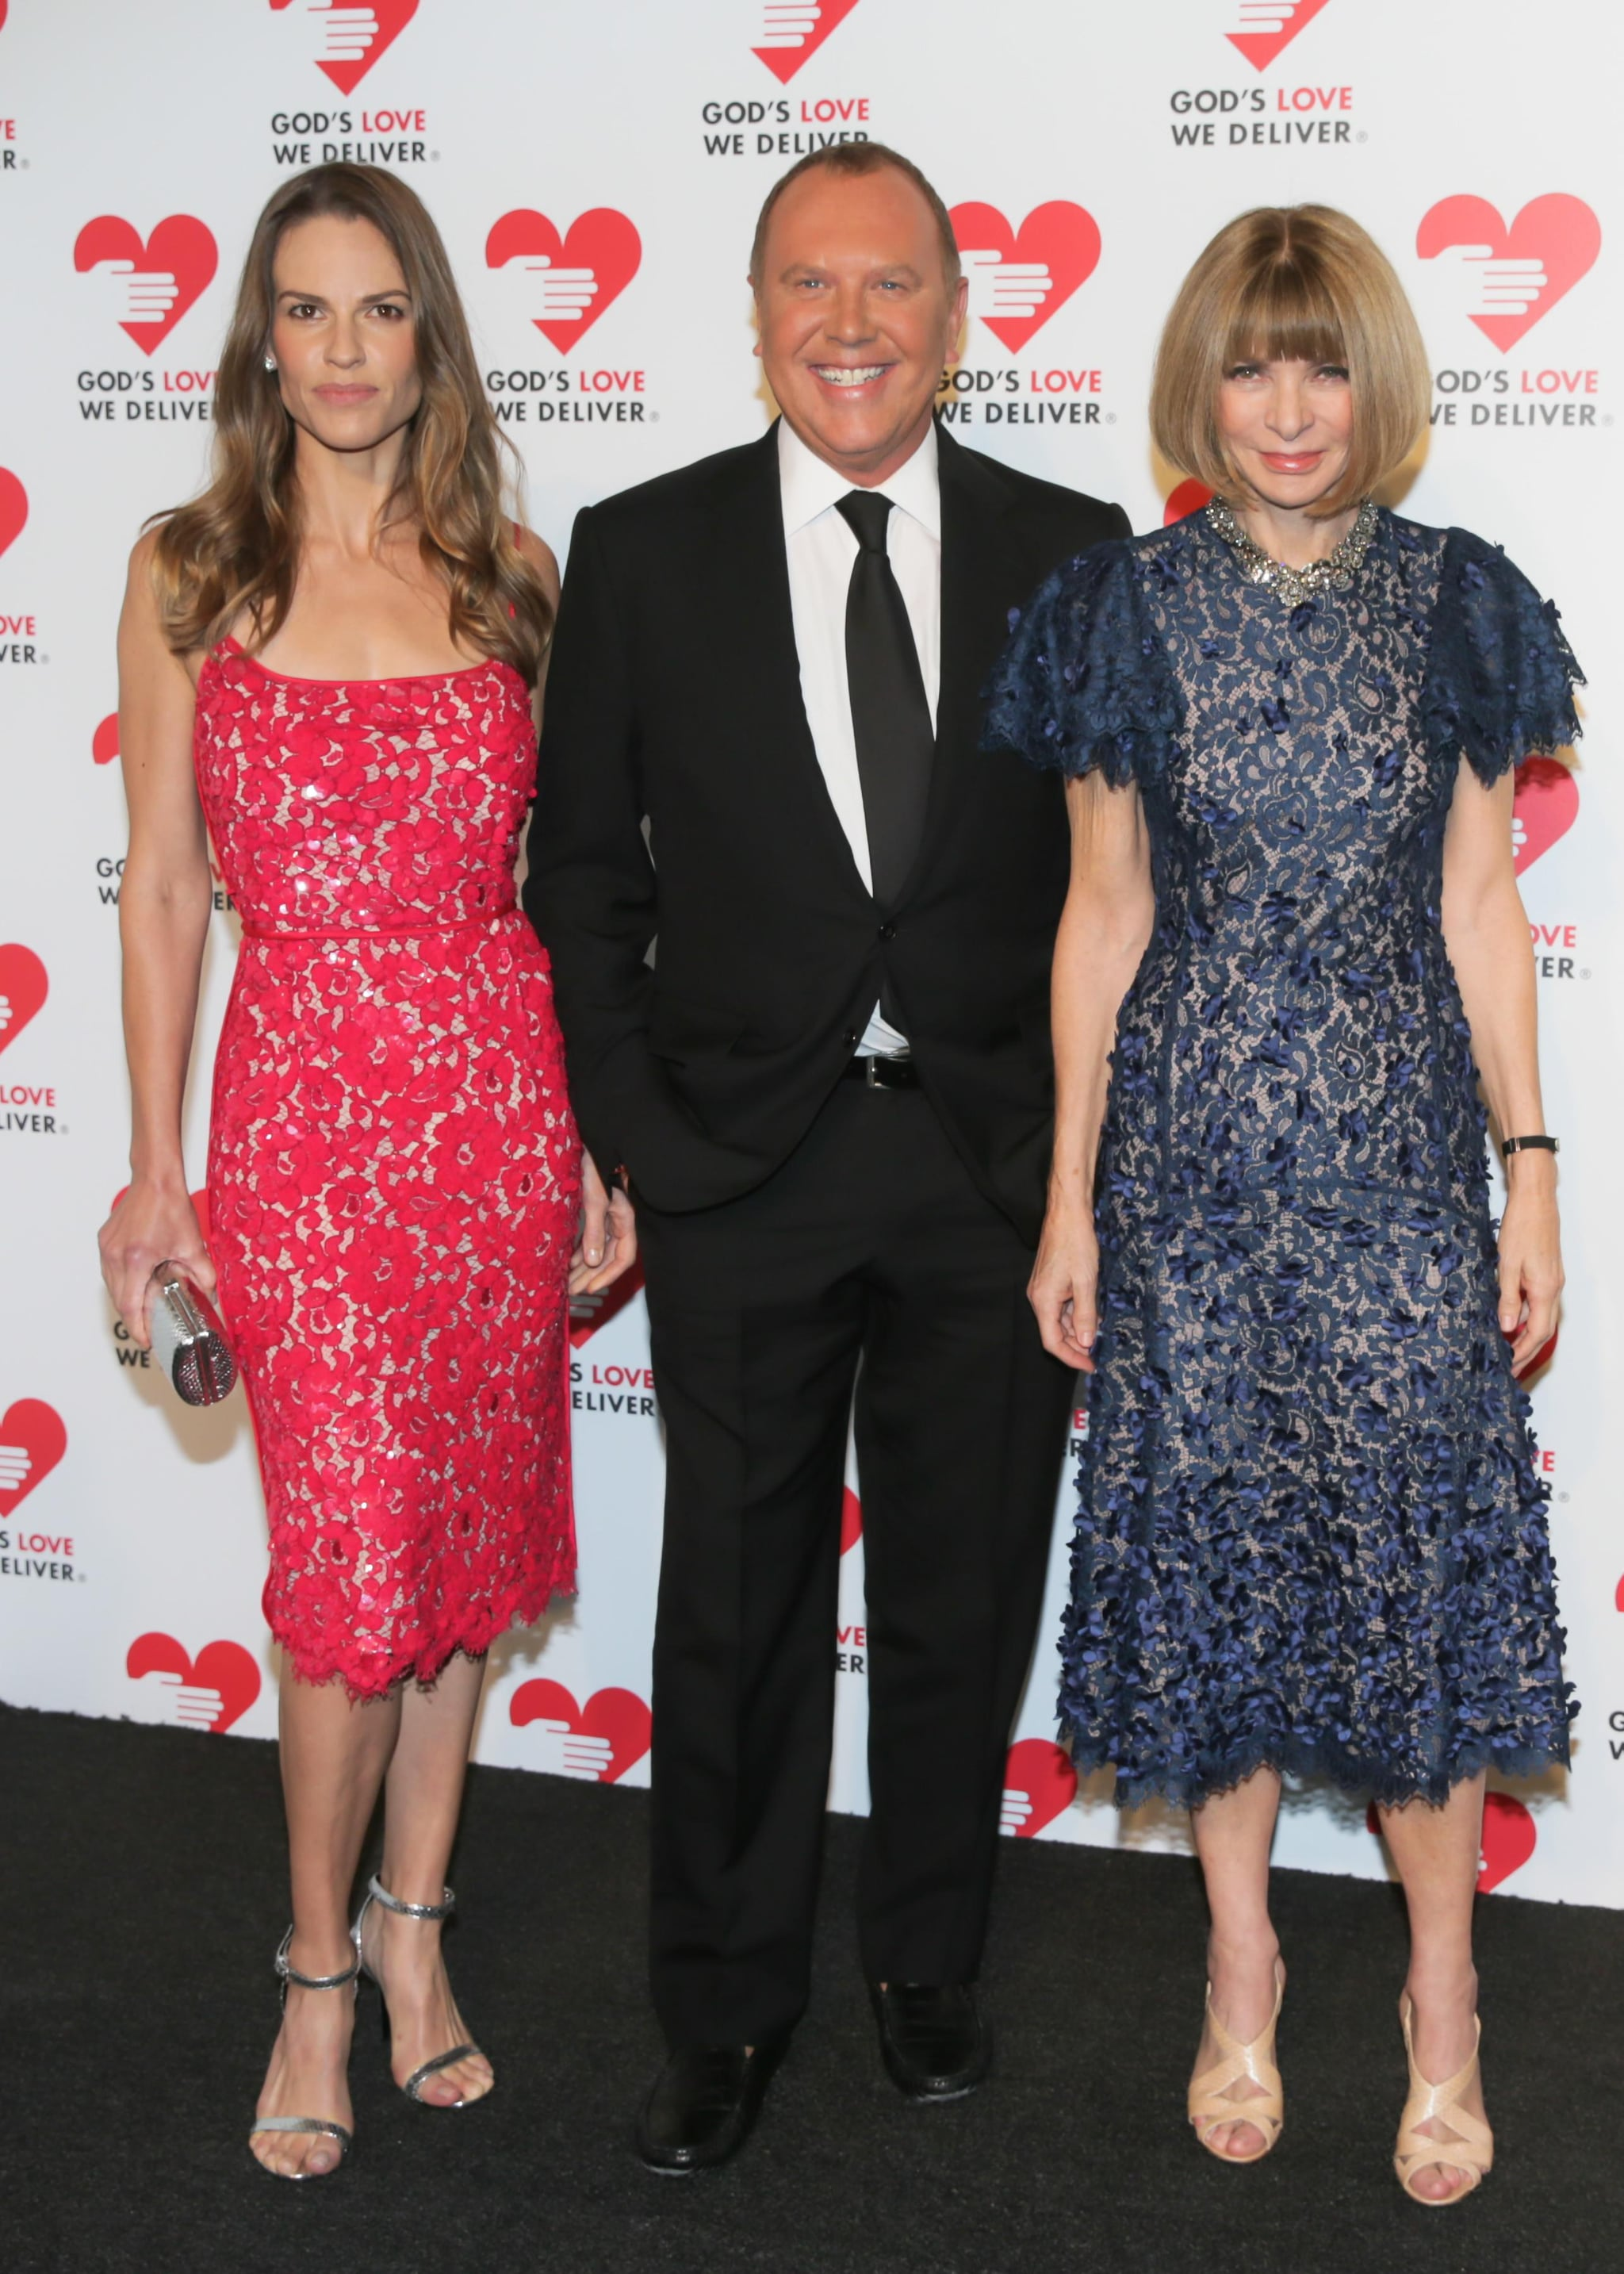 Anna Wintour and Hilary Swank joined Michael Kors in his lace designs at the God's Love We Deliver 2013 Golden Heart Awards Celebration.